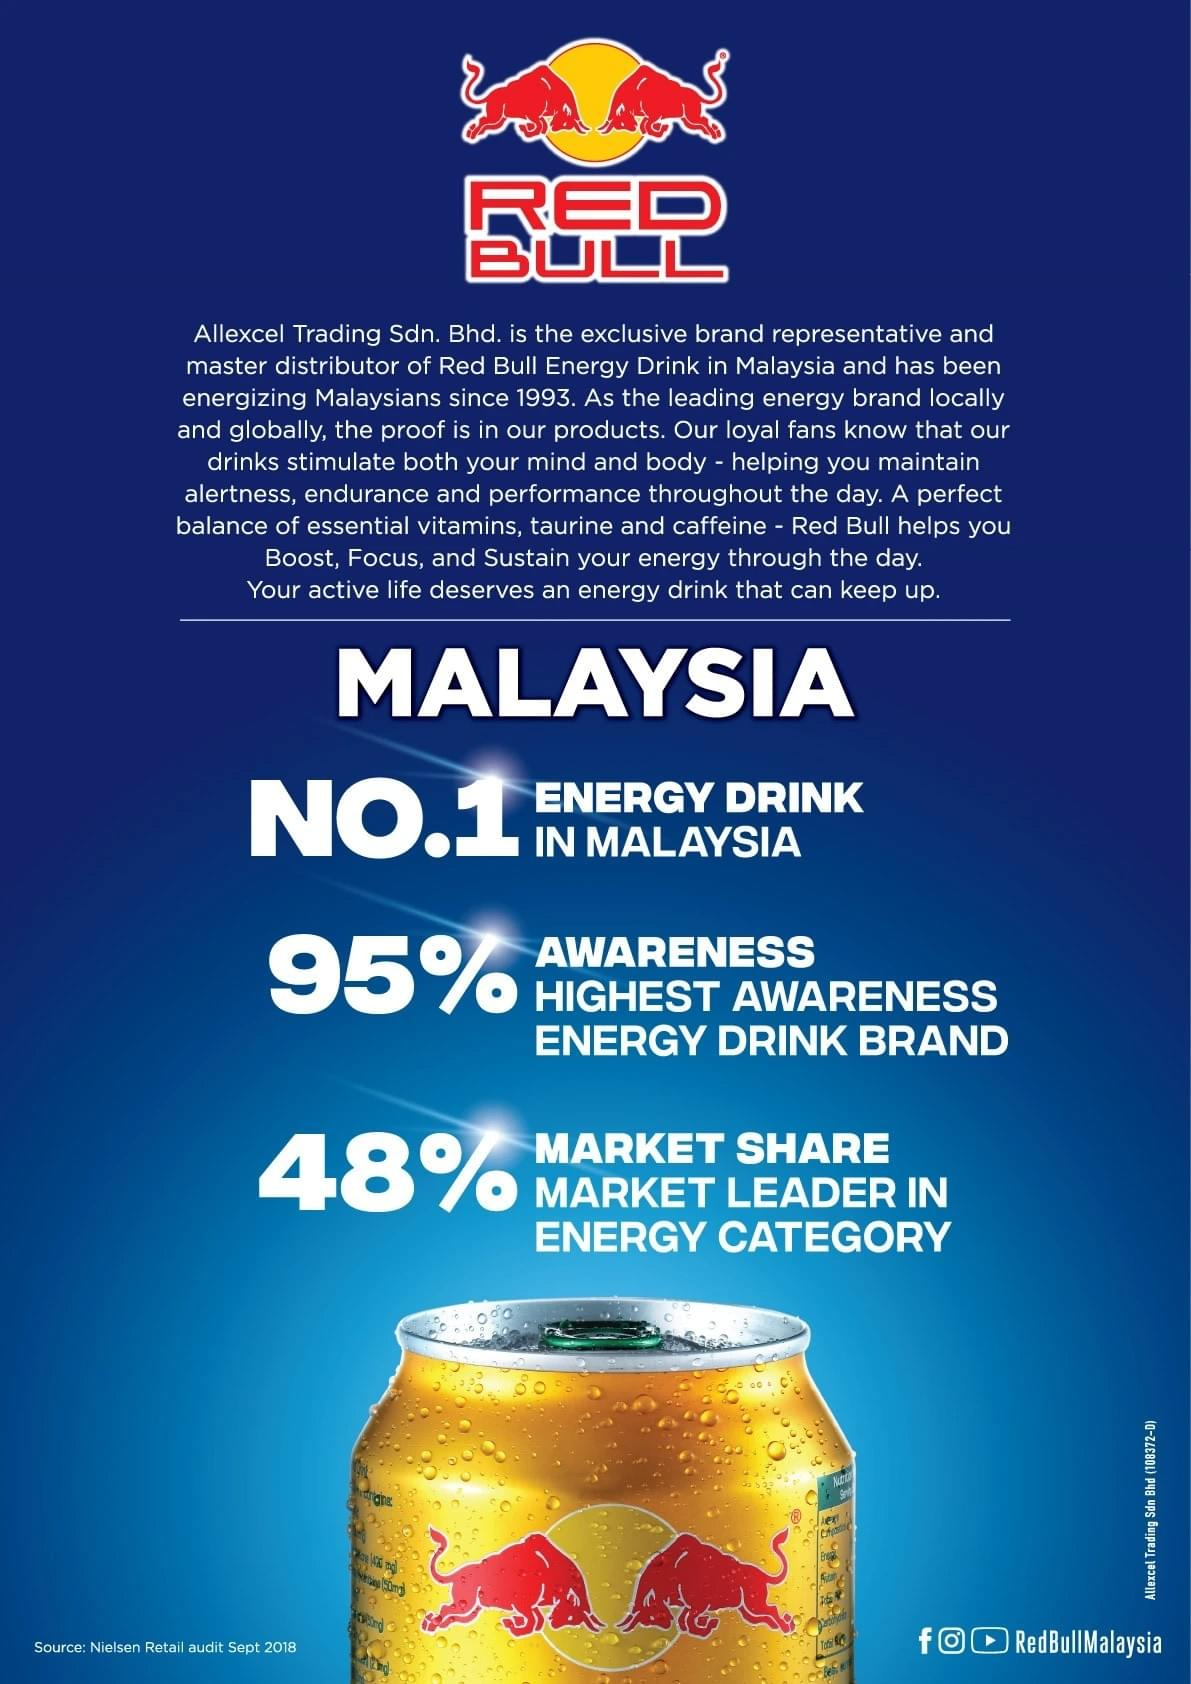 The Company Behind Red Bull Malaysia - No. 1 Energy Drink in Malaysia, 95% Awareness, 48% Market Share